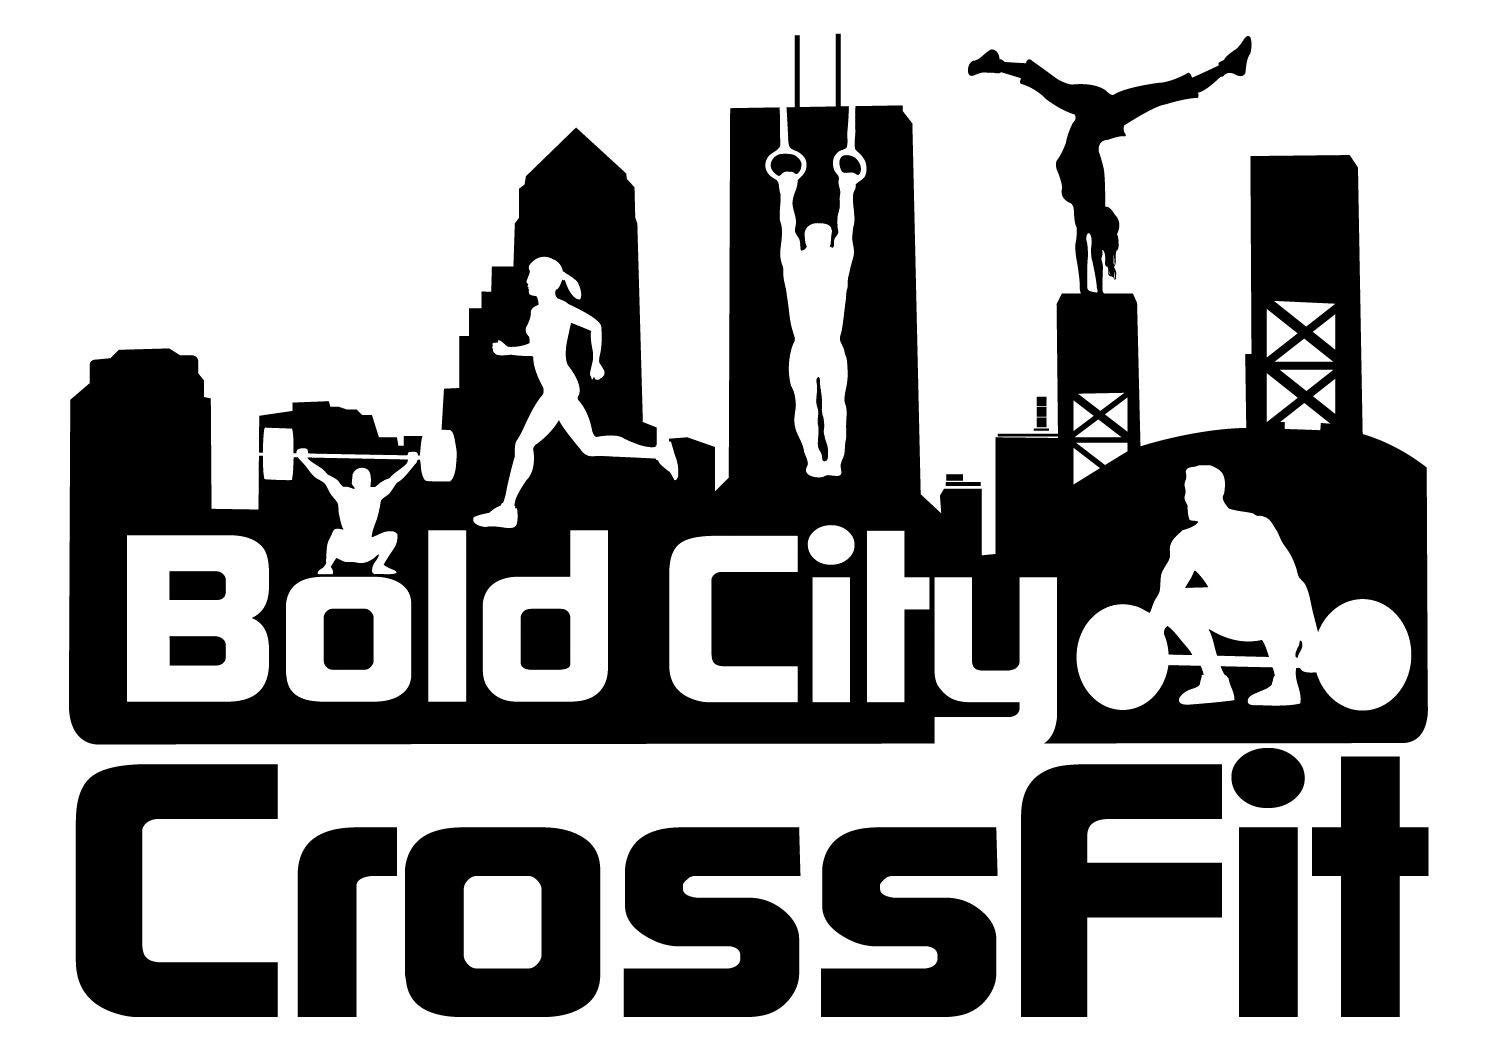 Bold City CrossFit